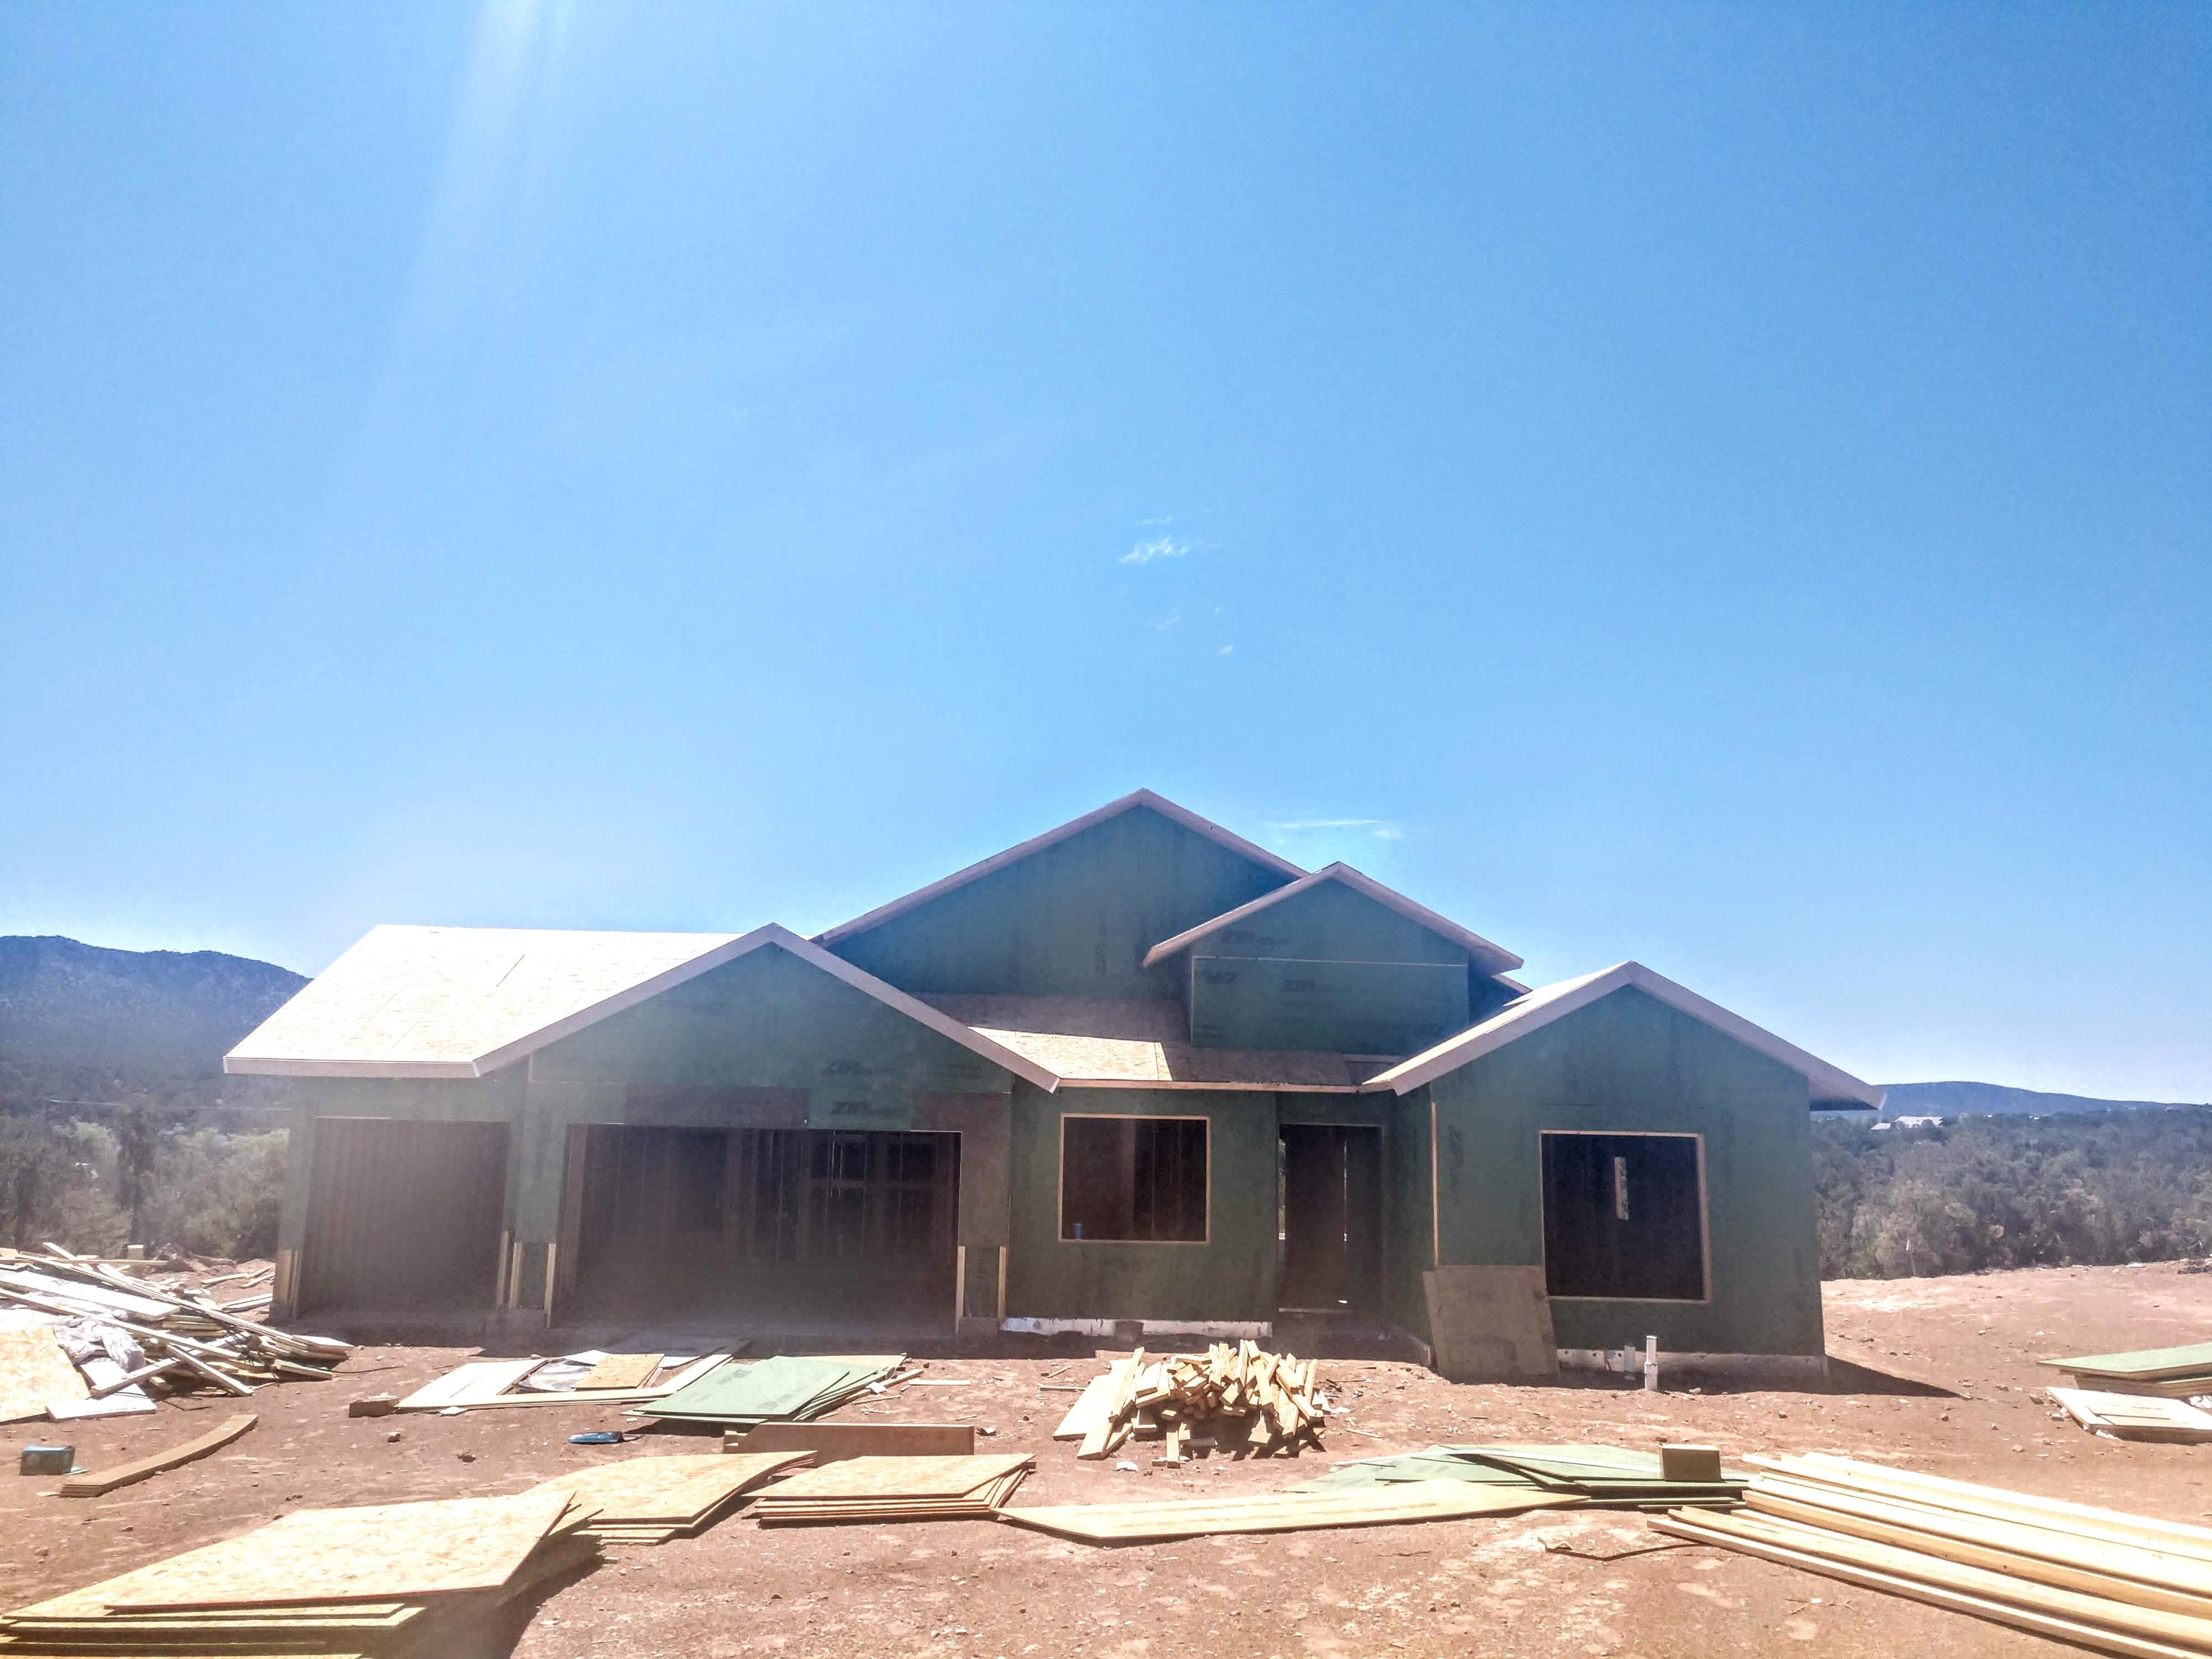 Brand New Abrazo Home  still under construction with estimated fall completion. The Pike Peak offers 4 beds with 3.5 baths and 3 car garage.  All on one level.  The views are spectacular.